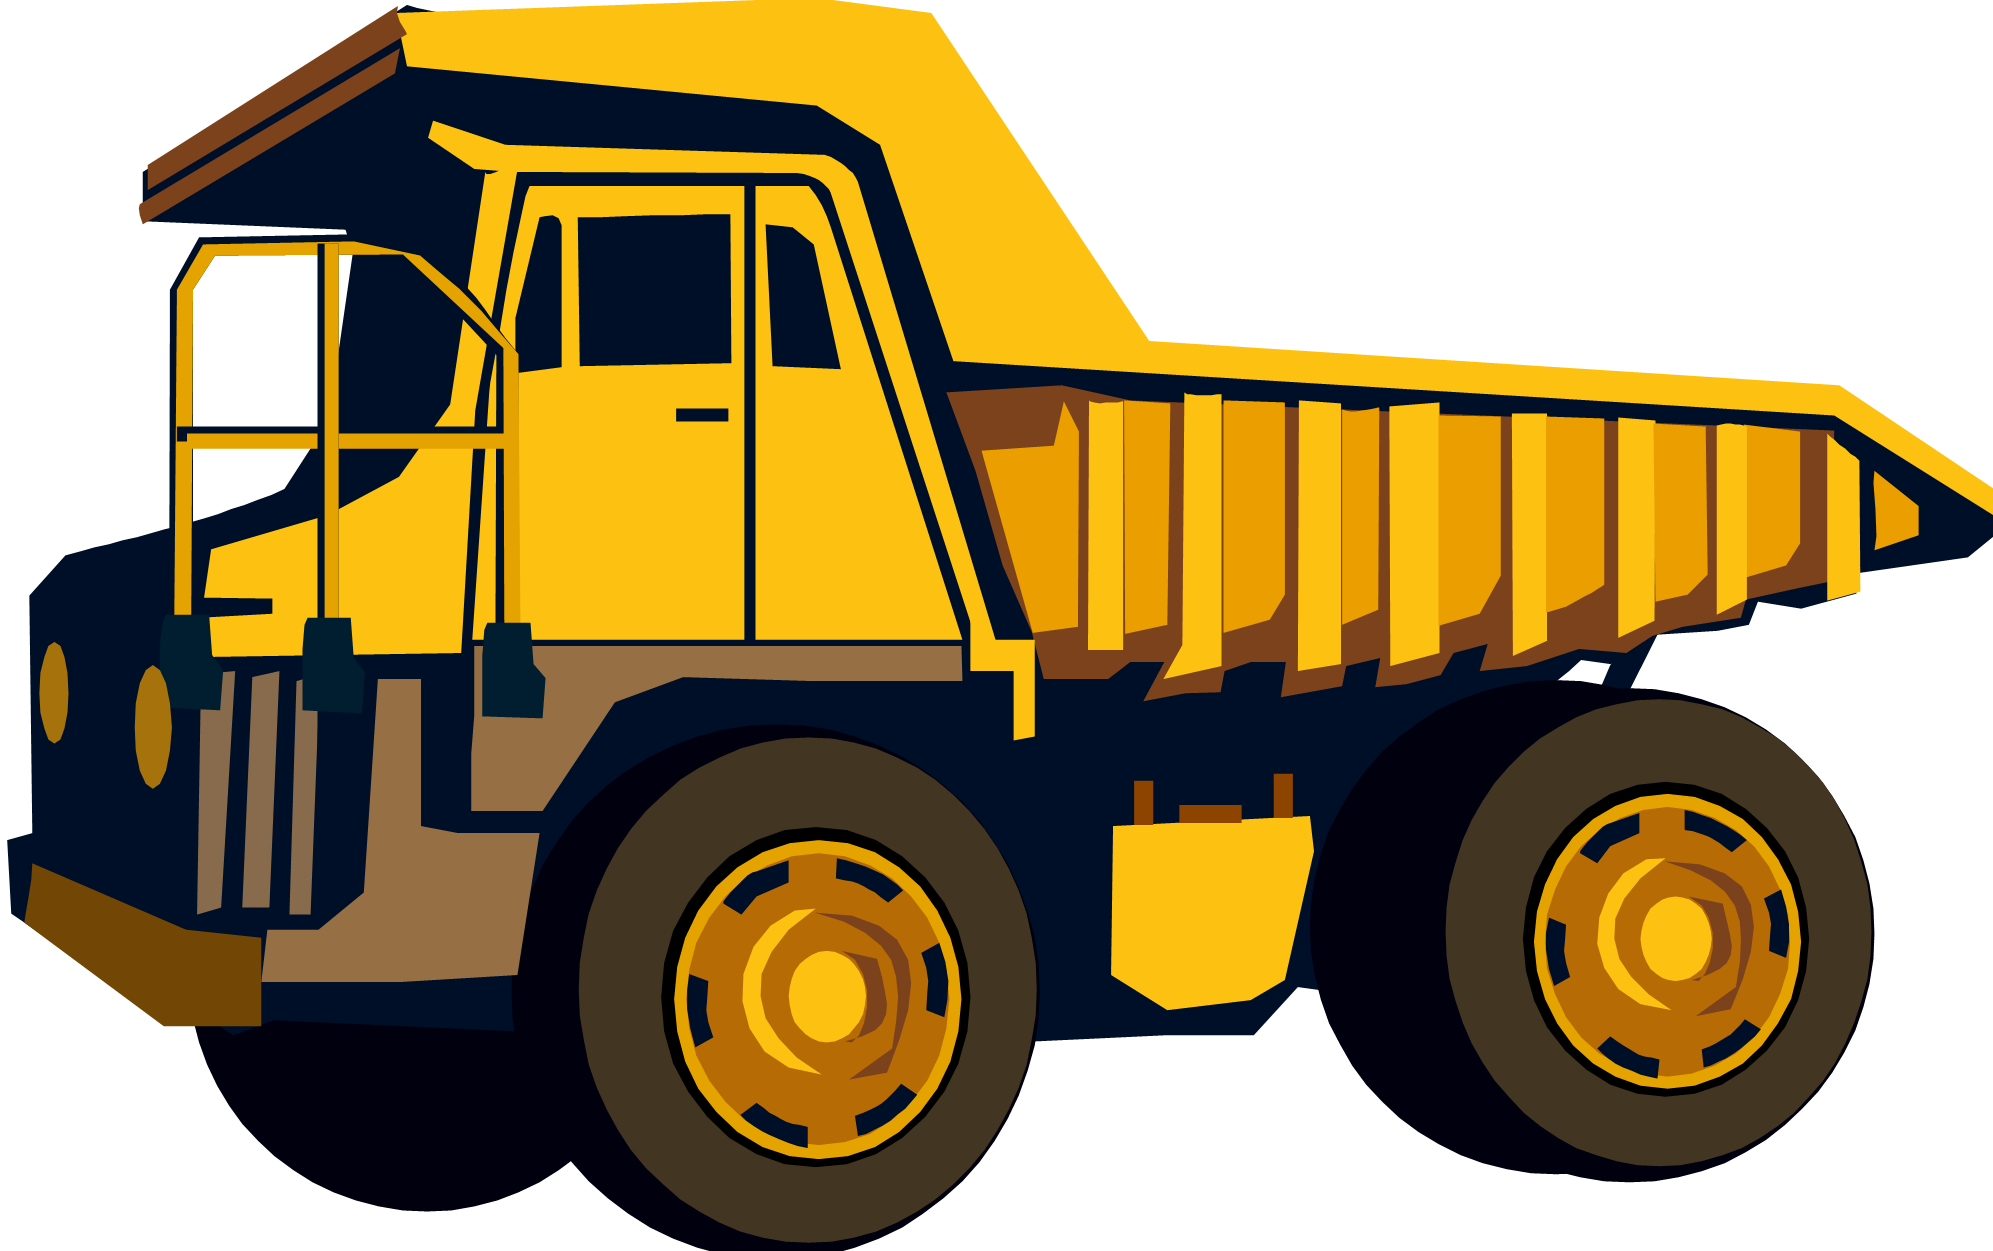 garbage graphic black. Dump clipart sand truck image transparent library